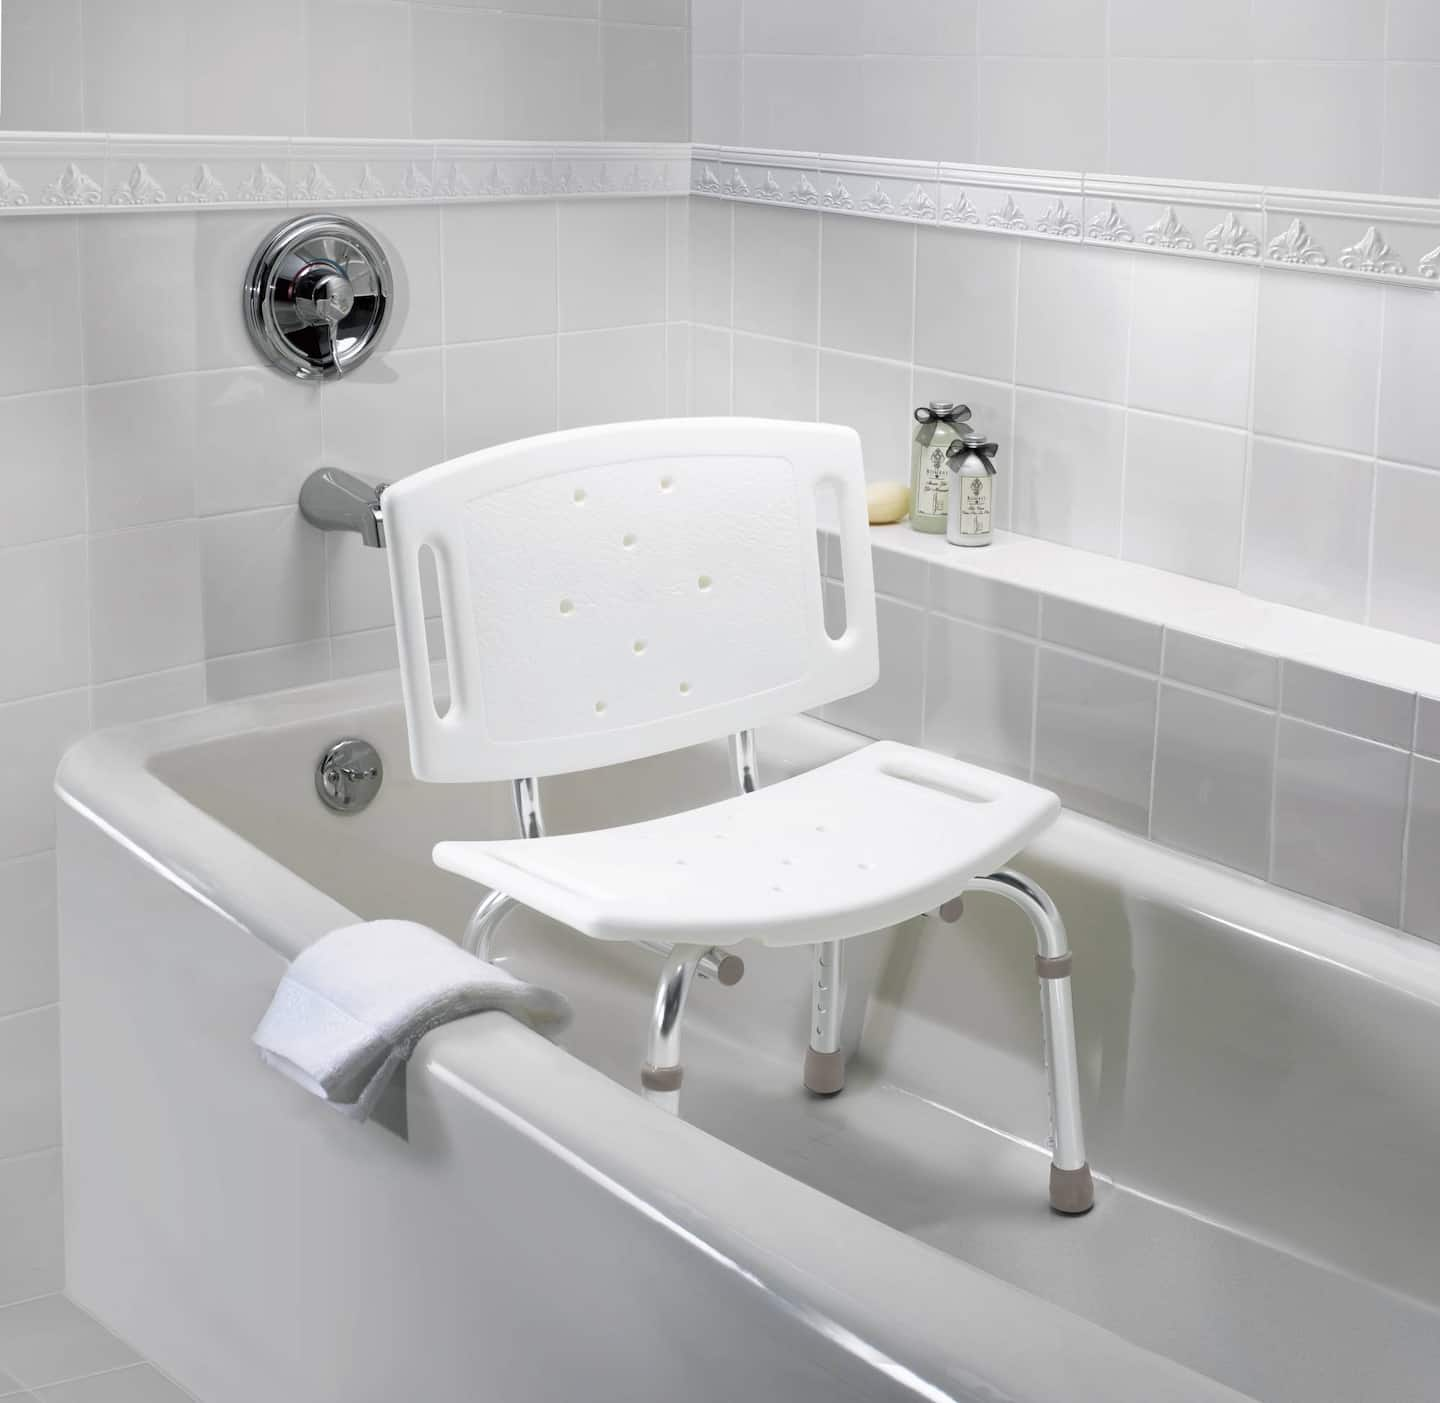 Moen Shower Chair Simple Bathroom Upgrade Ideas Angie 39s List